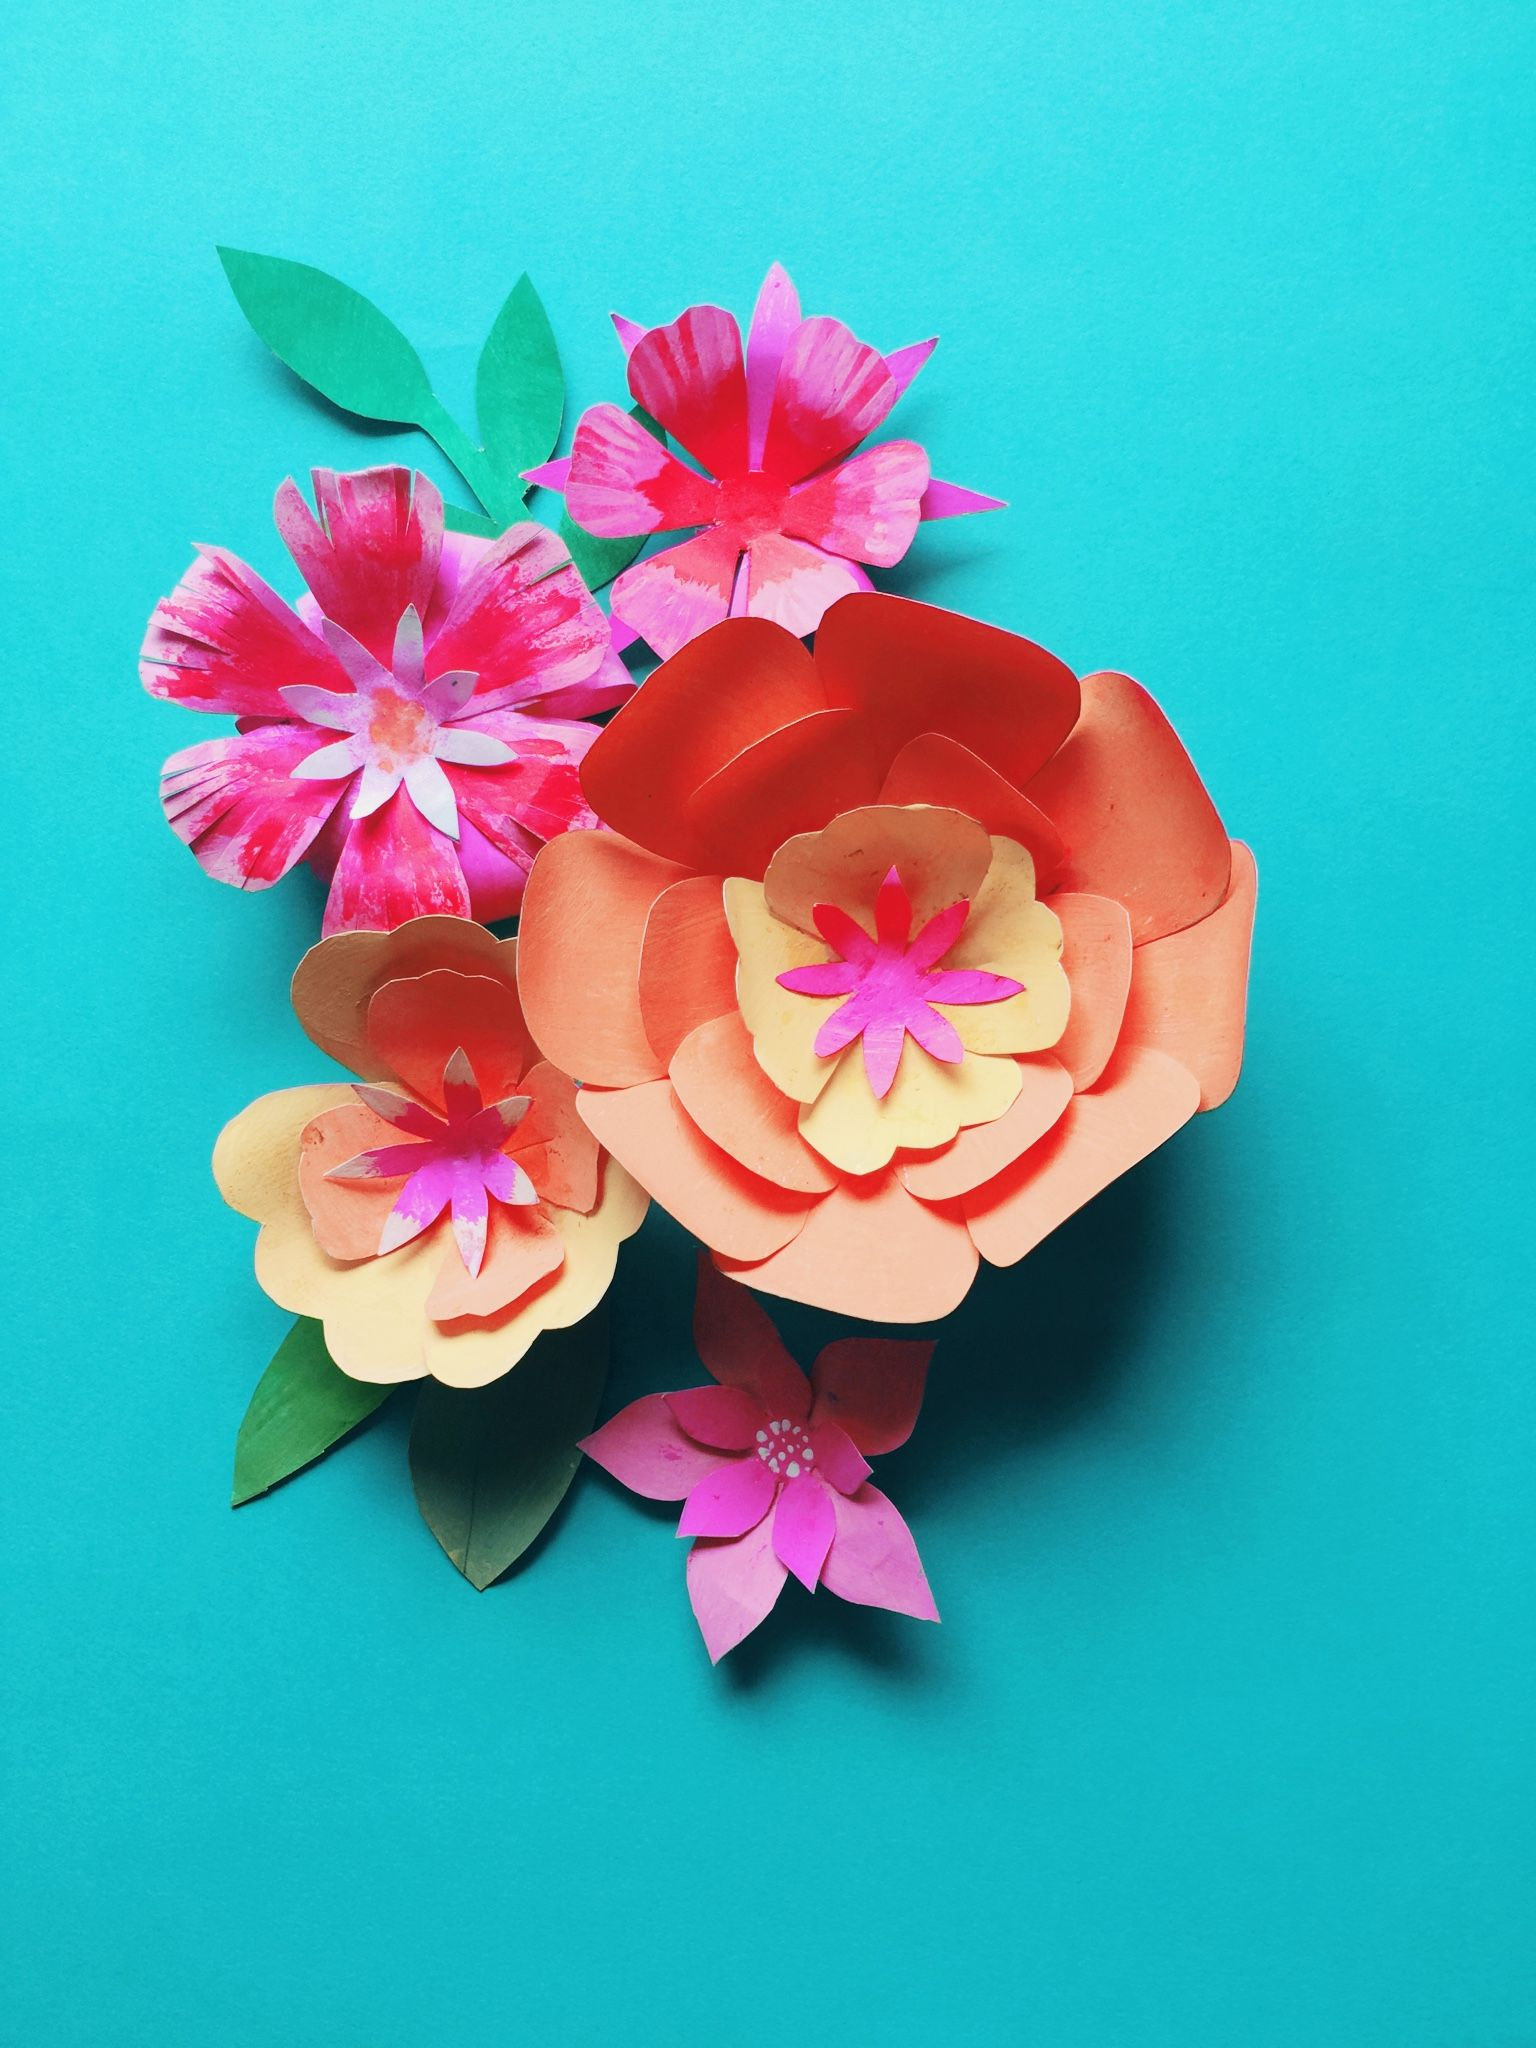 Diy Paper Flower Templates And Tutorial At Happythought Co Uk